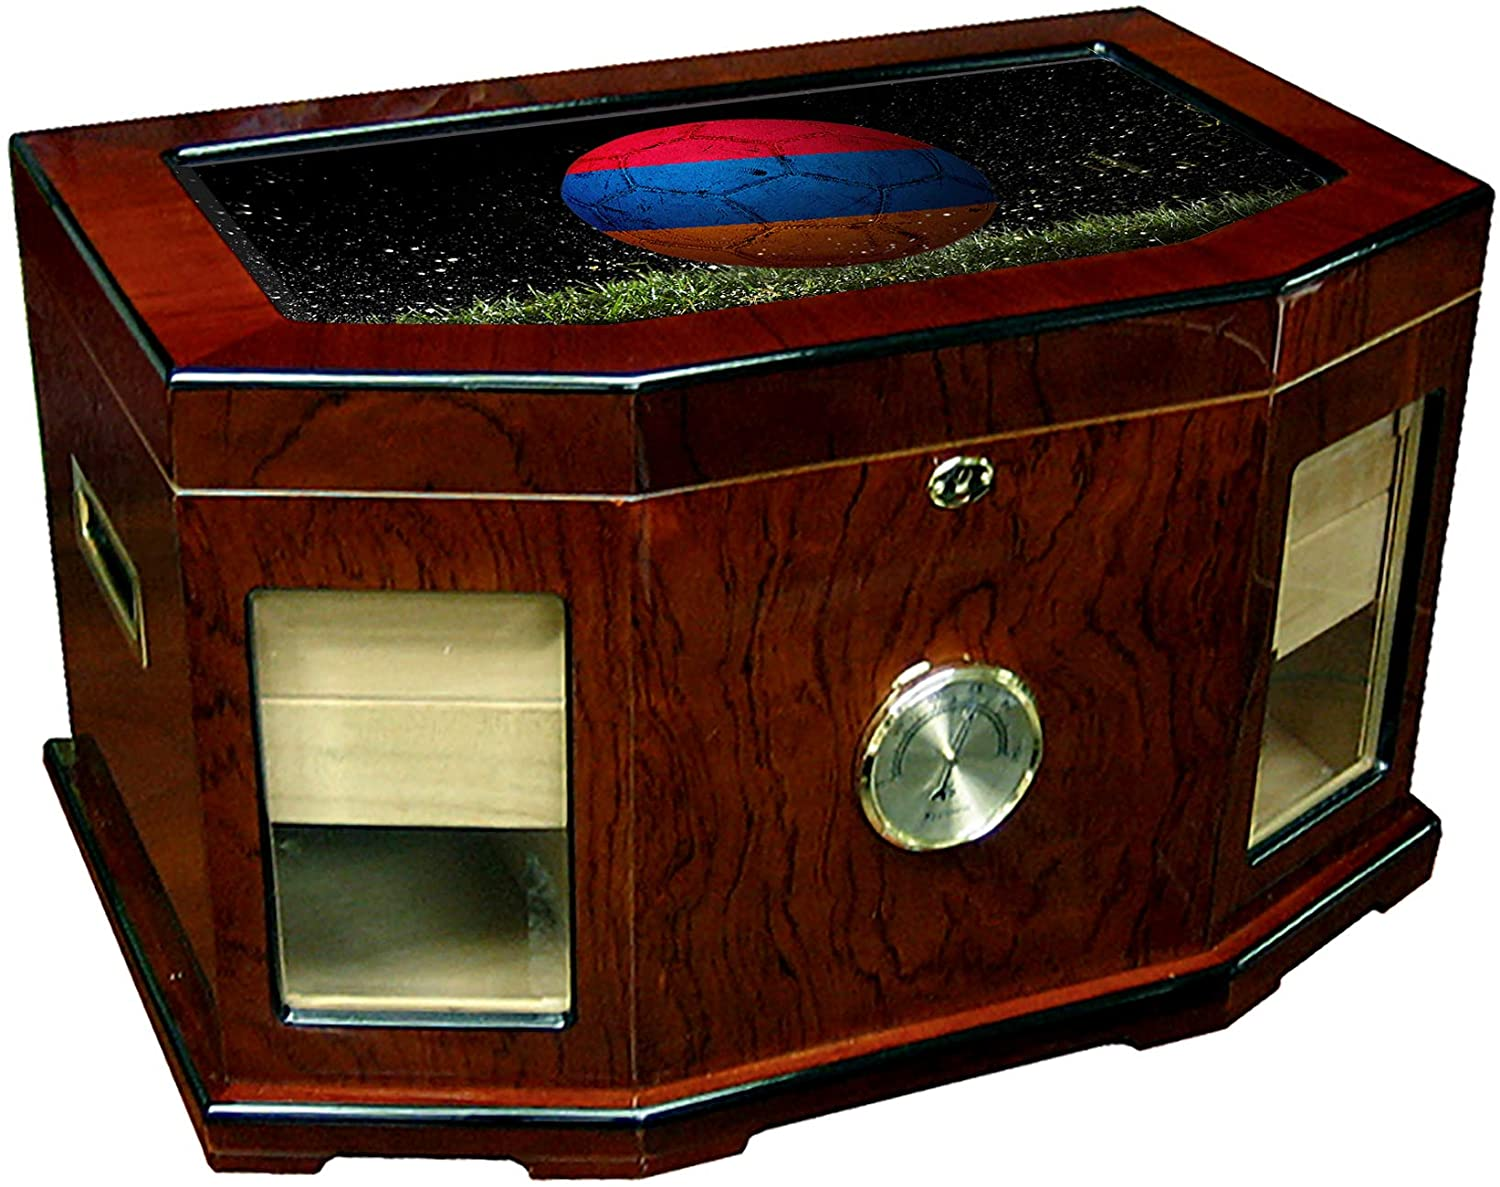 Large Premium Desktop Humidor - Glass Top - Flag of Armenia (Armenian) - Soccer Design - 300 Cigar Capacity - Cedar Lined with Two humidifiers & Large Front Mounted Hygrometer.